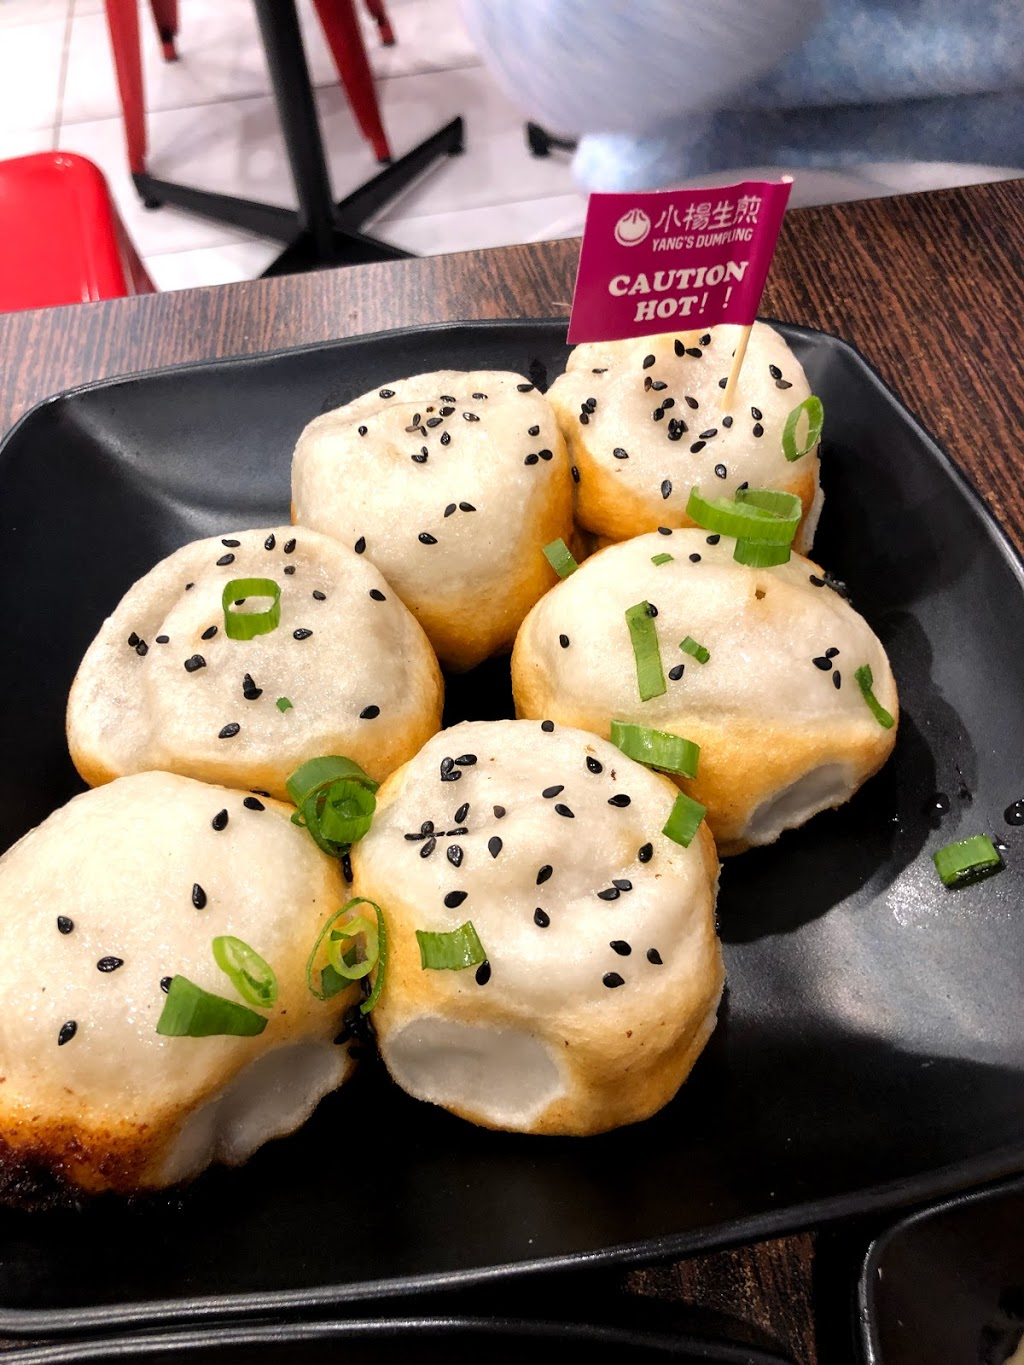 Yang's dumpling | meal takeaway | 1025 Whitehorse Rd, Box Hill VIC 3128, Australia | 0398901824 OR +61 3 9890 1824